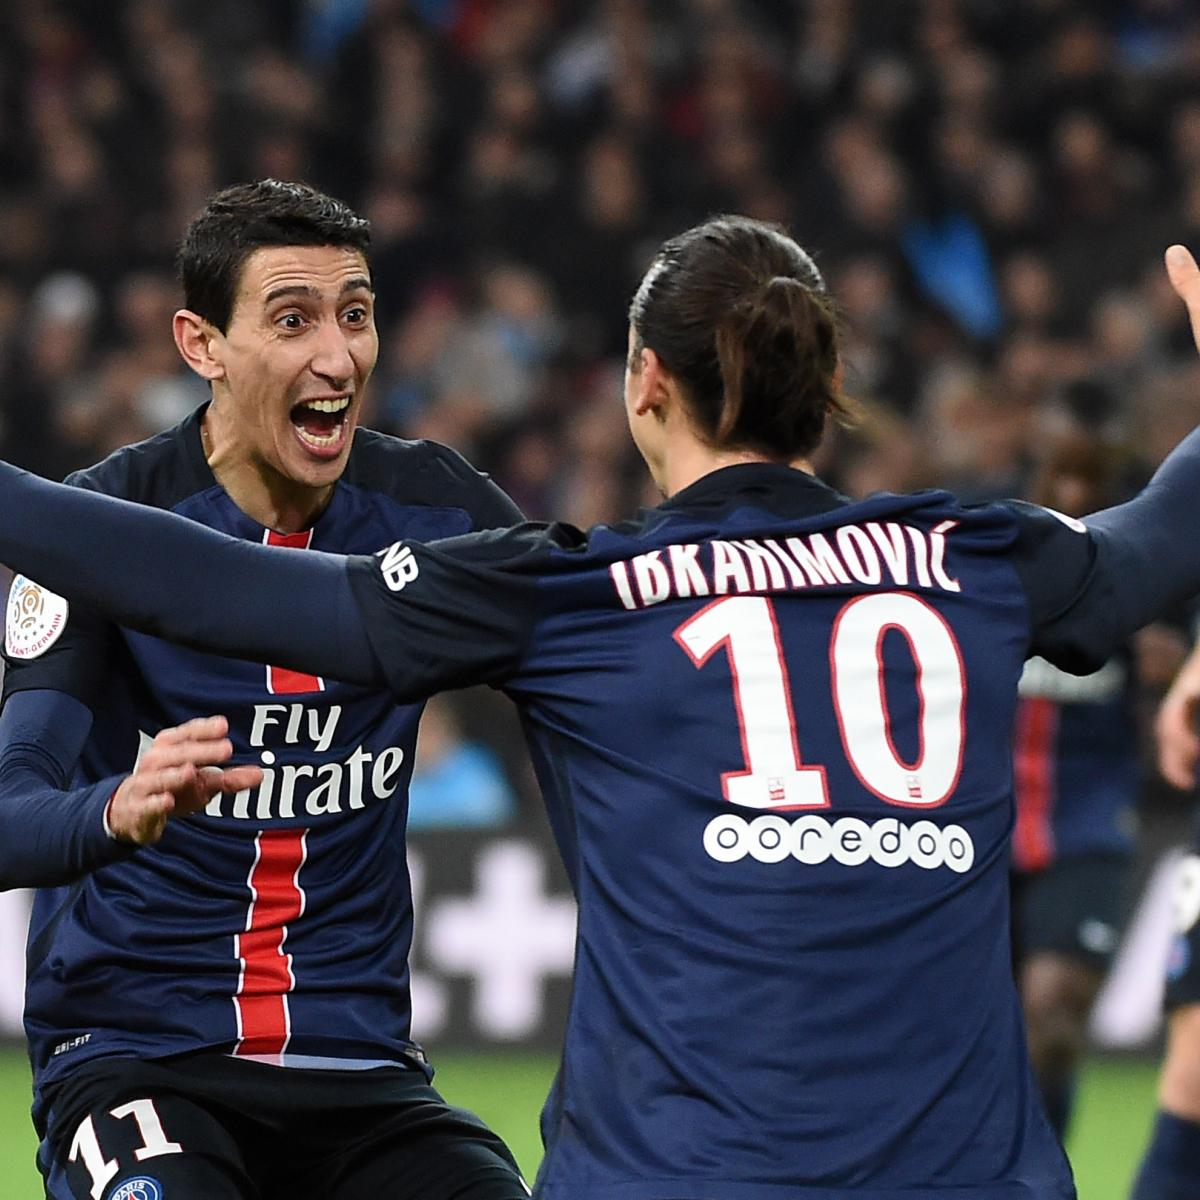 Bastia 0 3 Psg Match Report: Marseille Vs. PSG: Winners And Losers From Ligue 1 Game